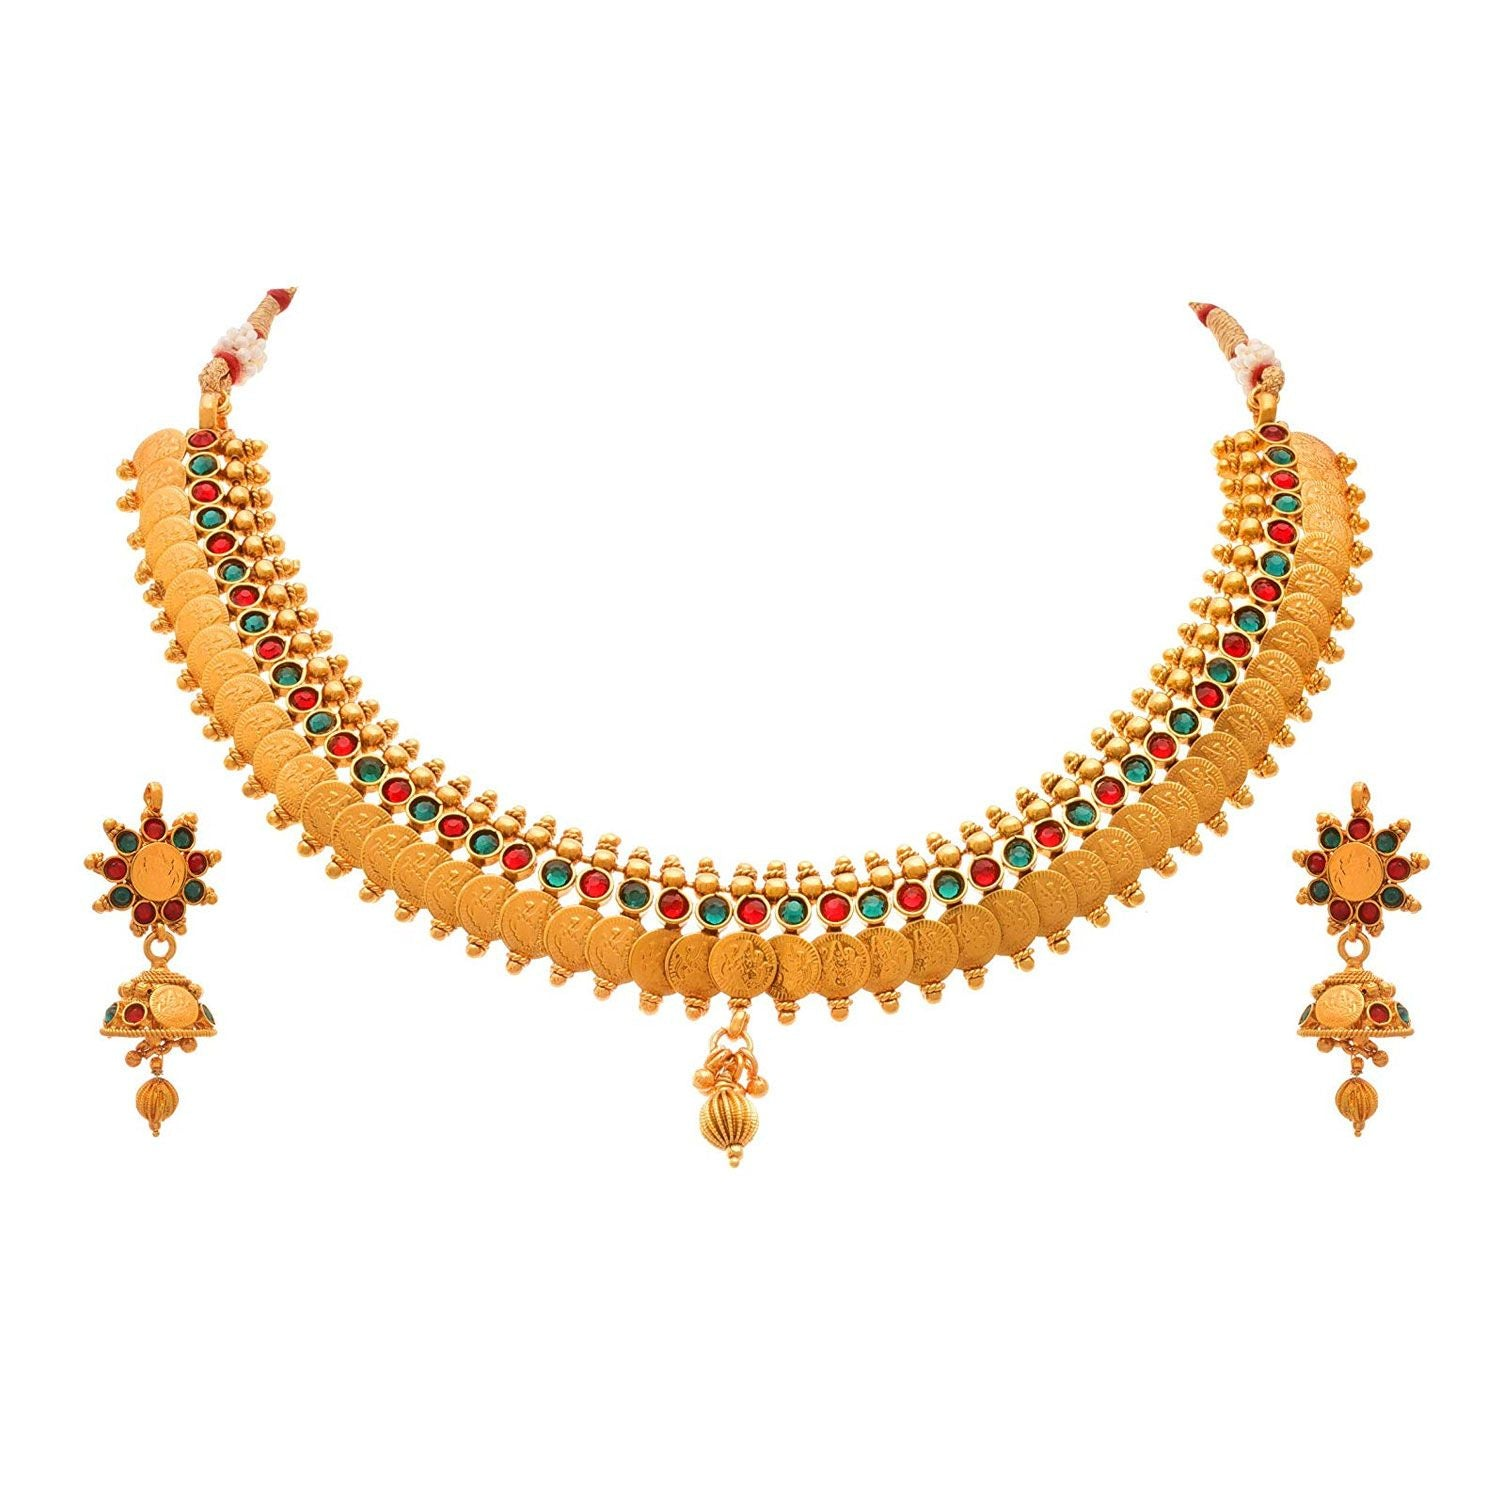 JFL - Traditional Ethnic One Gram Gold Plated Temple Laxmi Goddess Stone Designer Necklace Set with Jhumka Earring for Women & Girls.